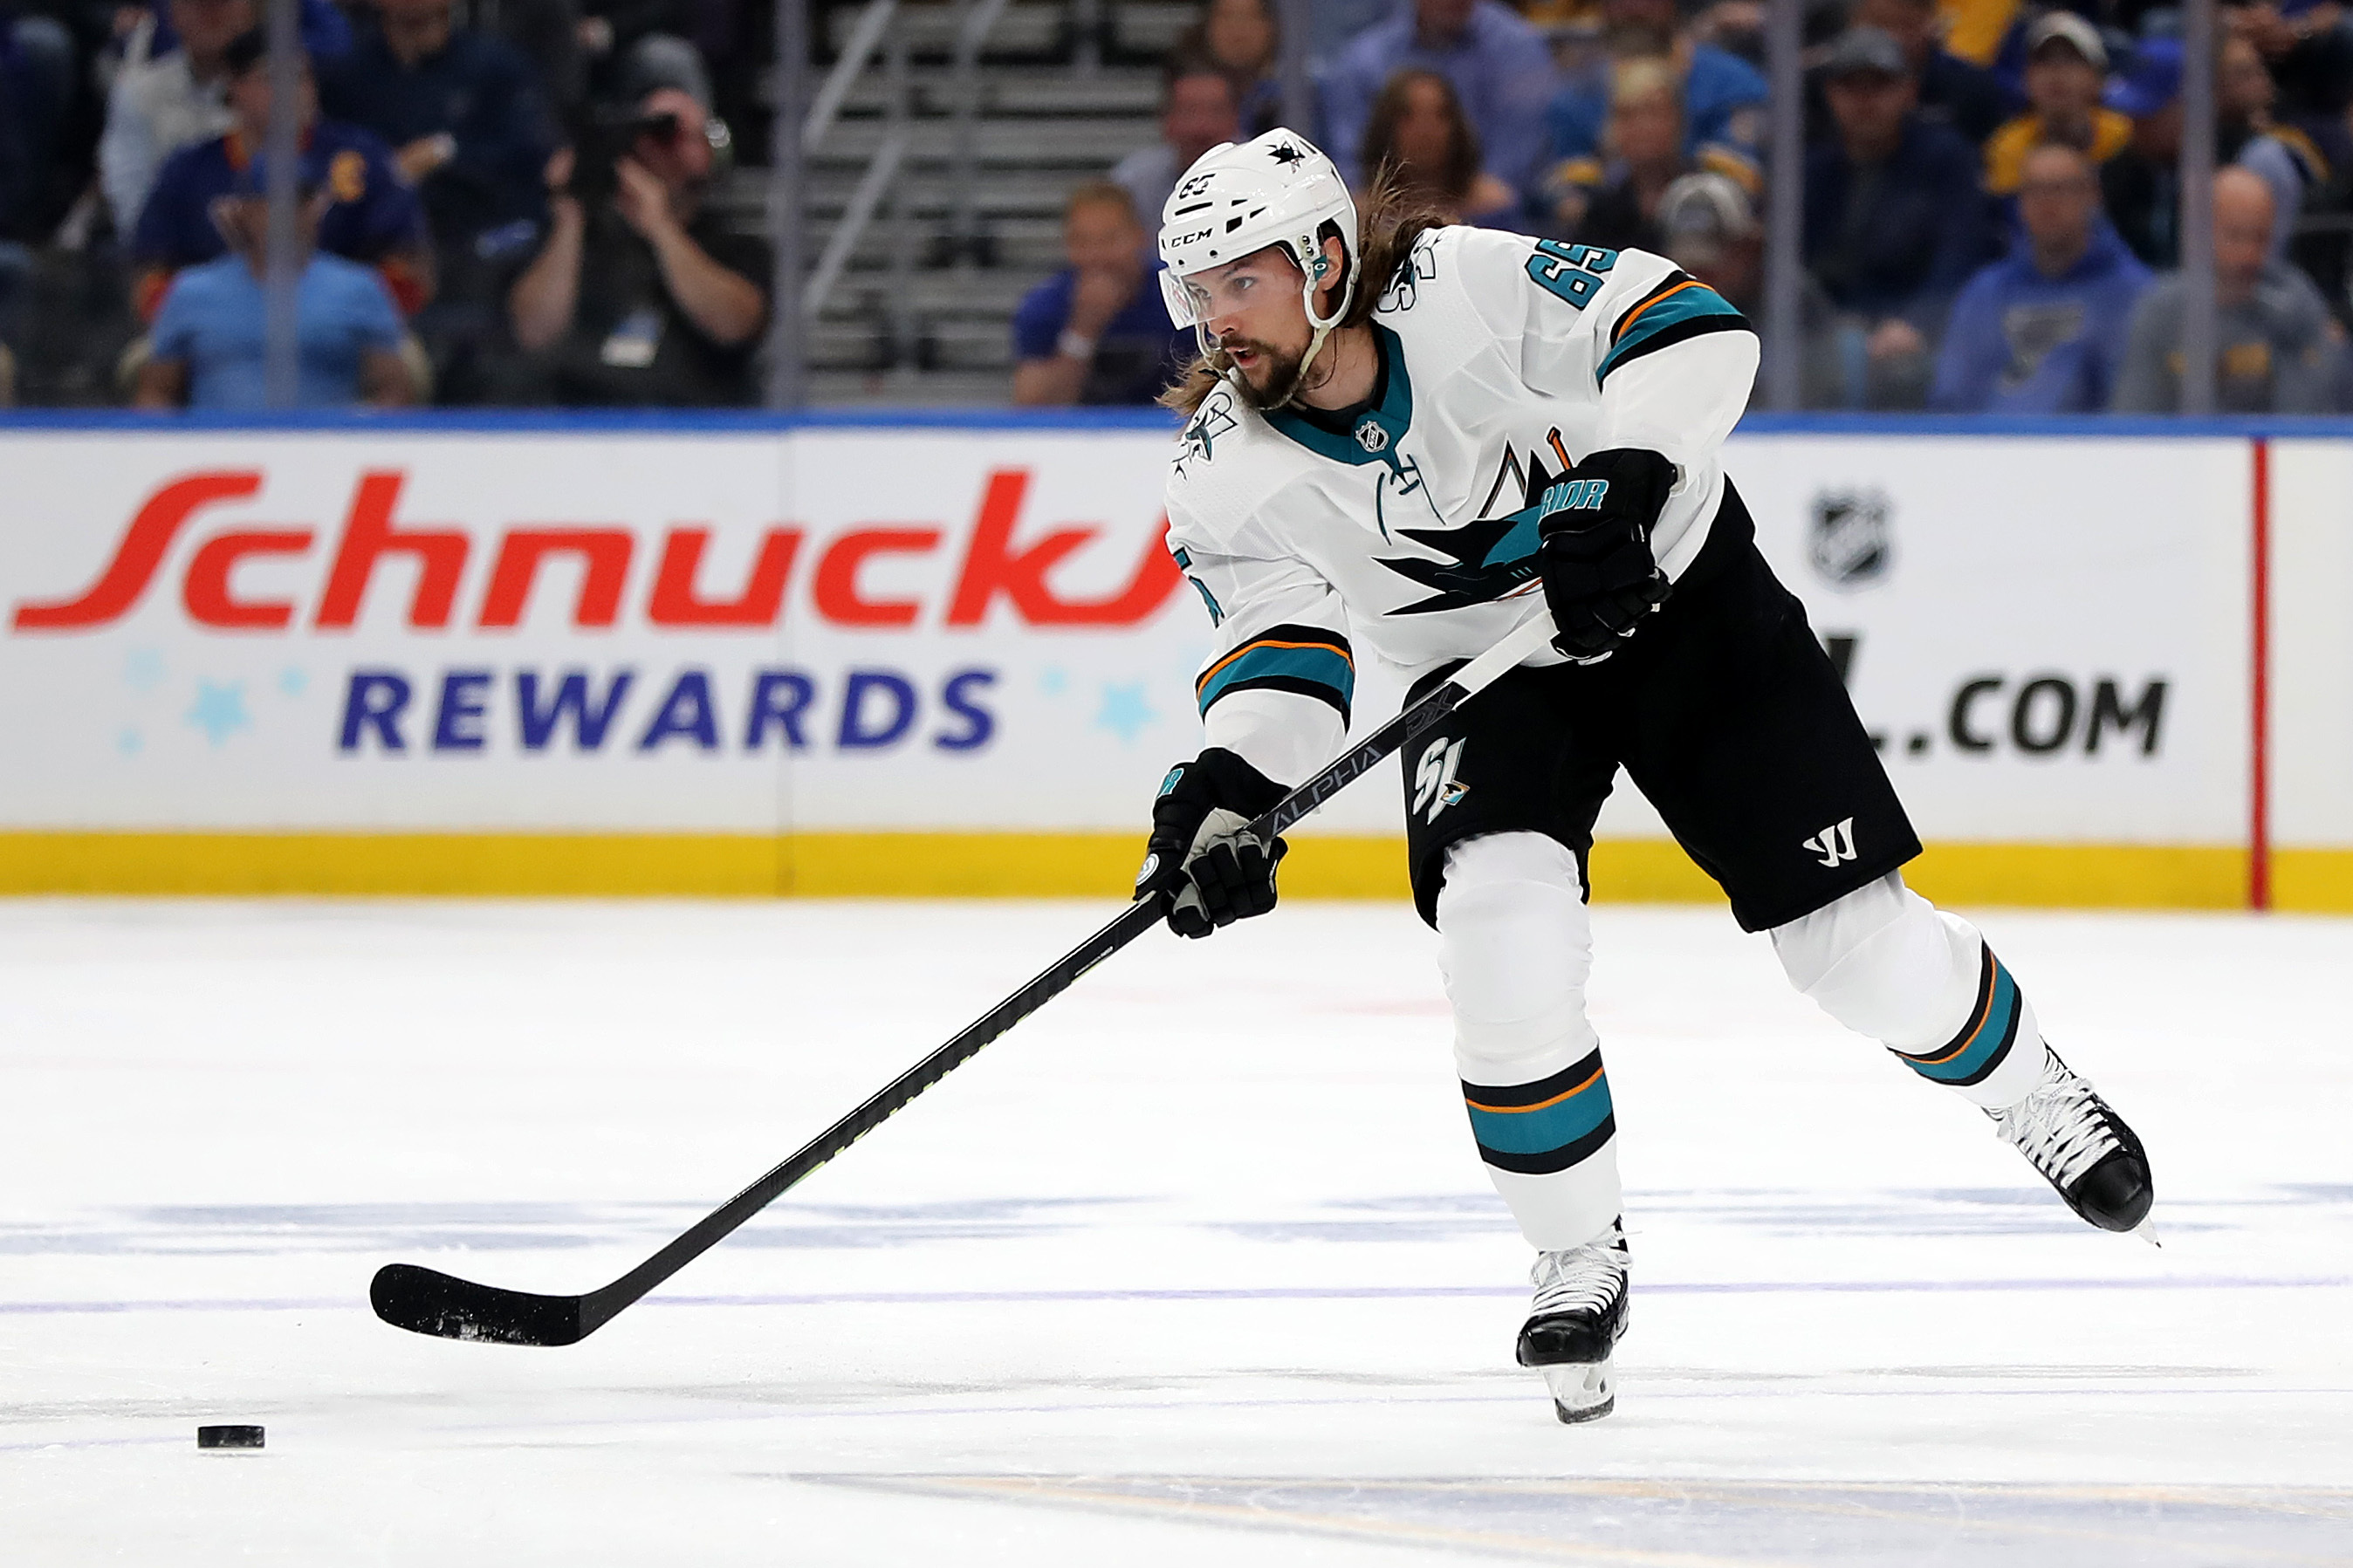 de15e36e8dd Erik Karlsson, Sharks Agree on 8-Year Contract Reportedly Worth More Than  $88M